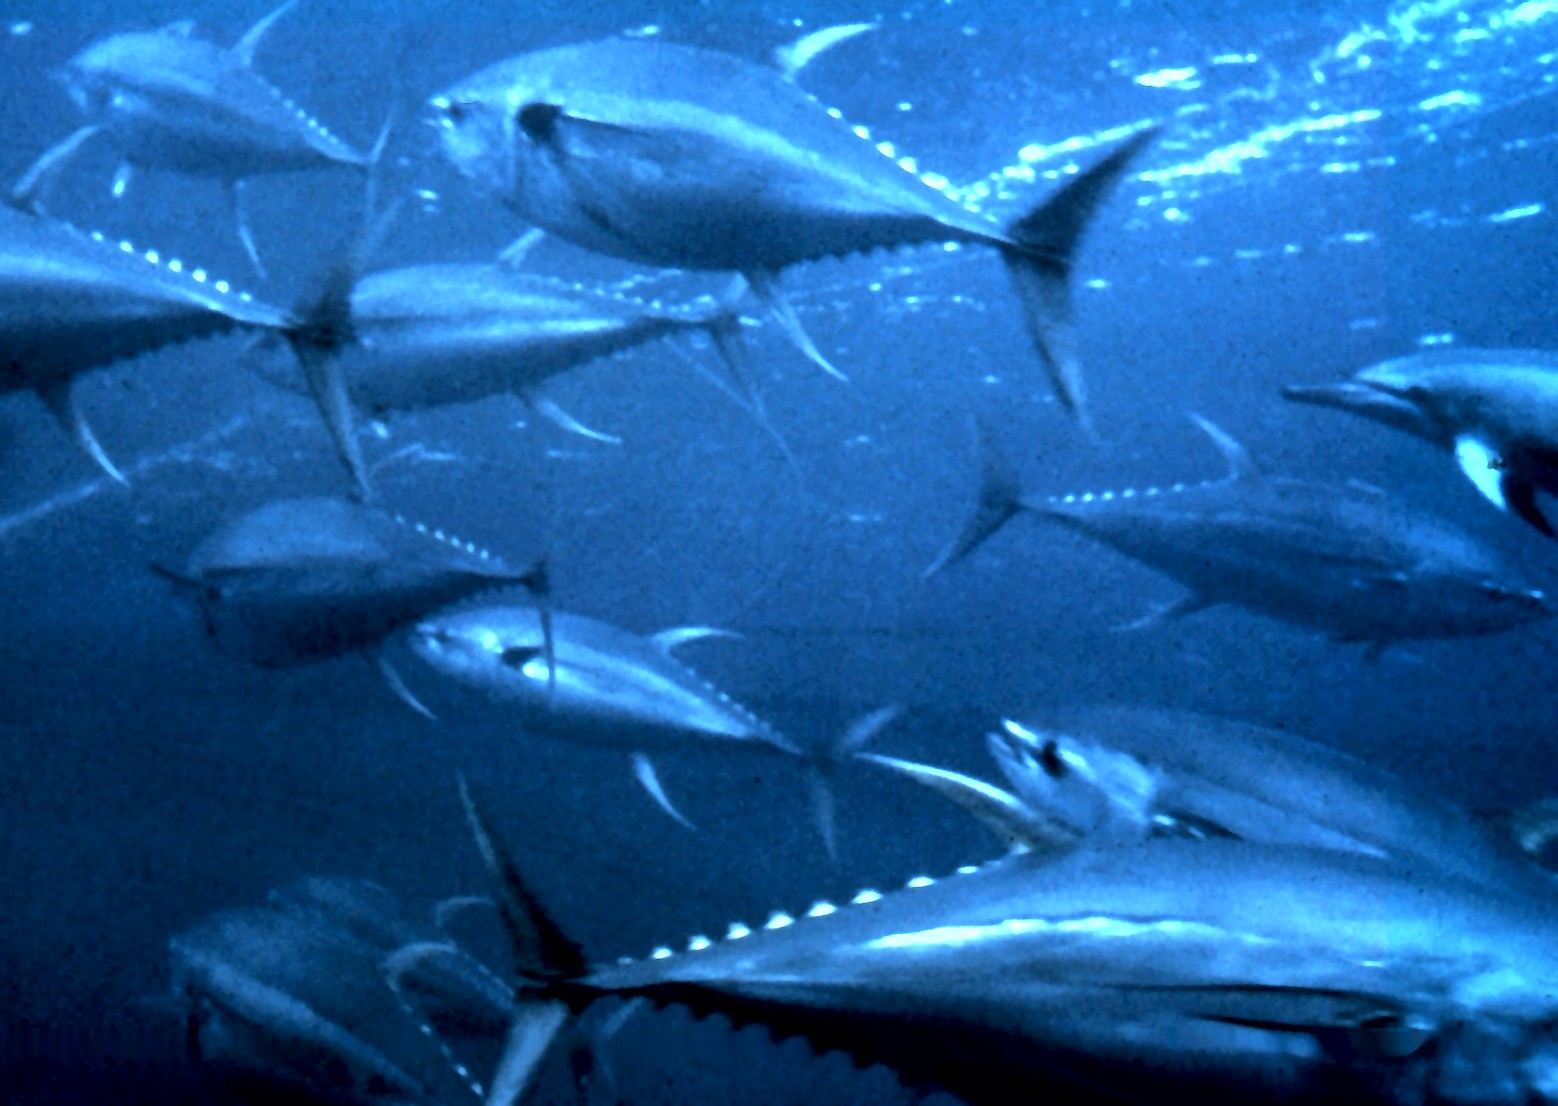 Des thons albacore (yellowfin tuna), une ressource précieuse encore abondante en Polynésie. (crédit photo : OAR/National Undersea Research Program)